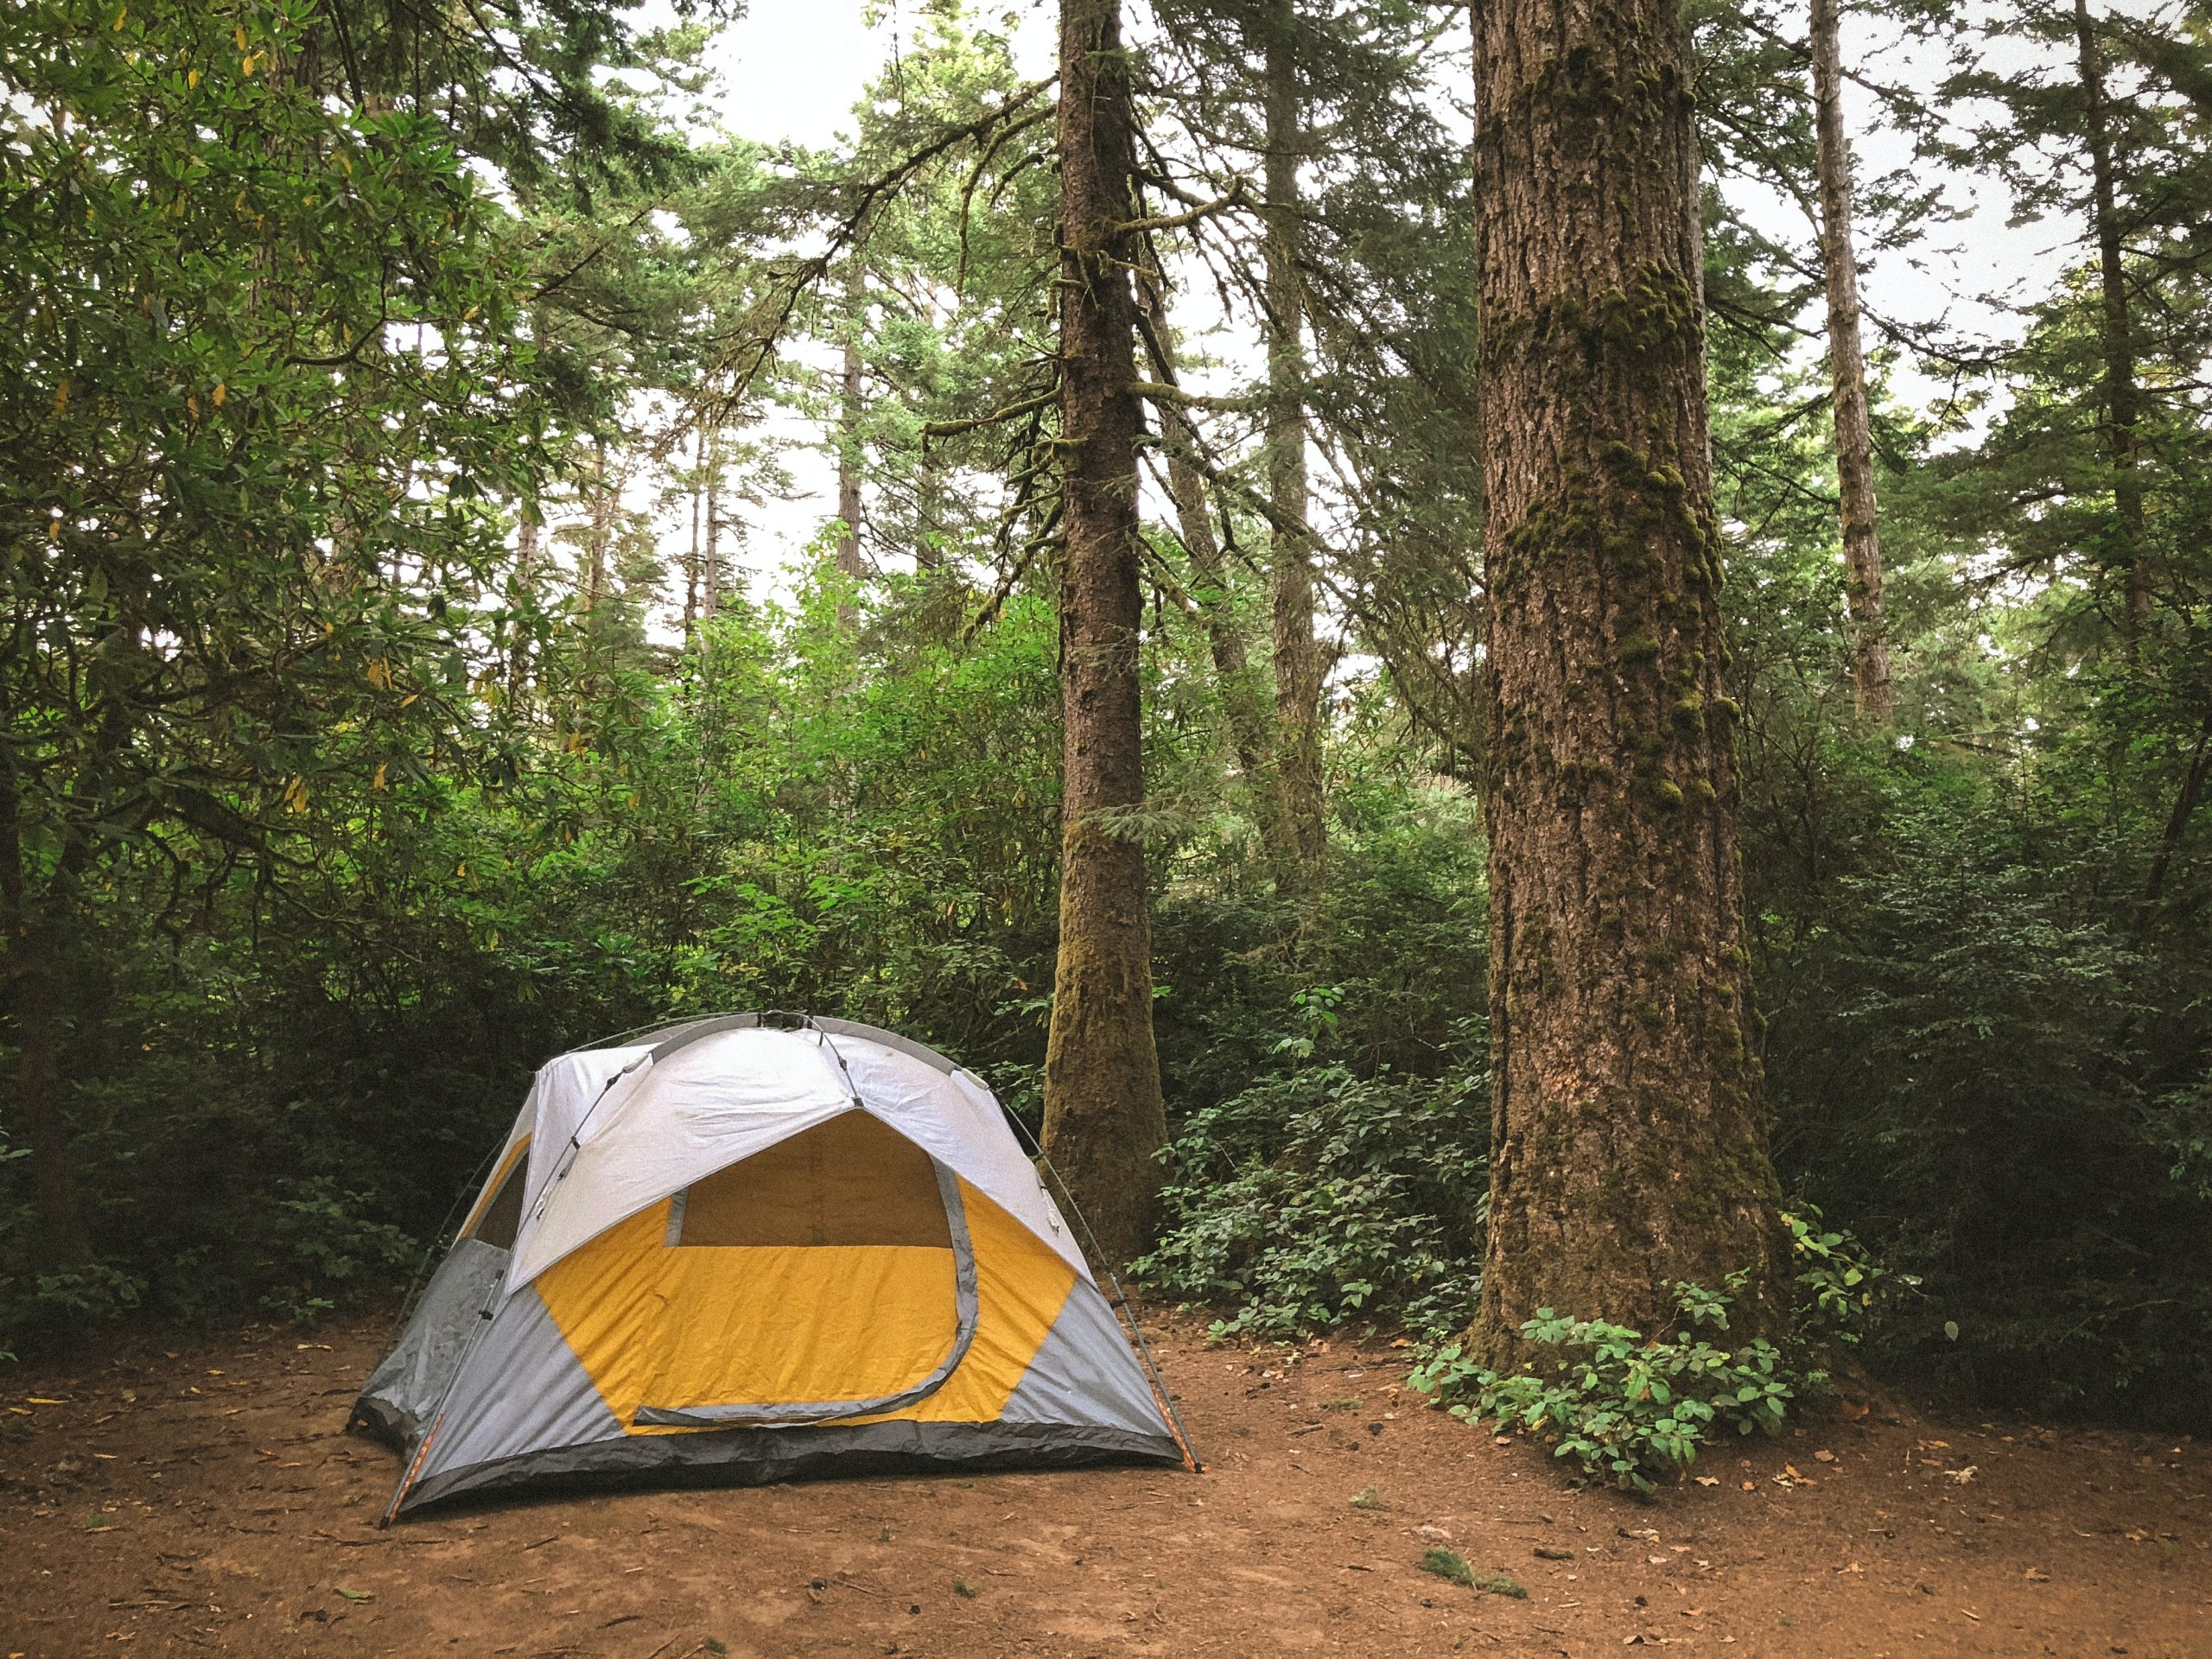 tent as shelter for wilderness survival